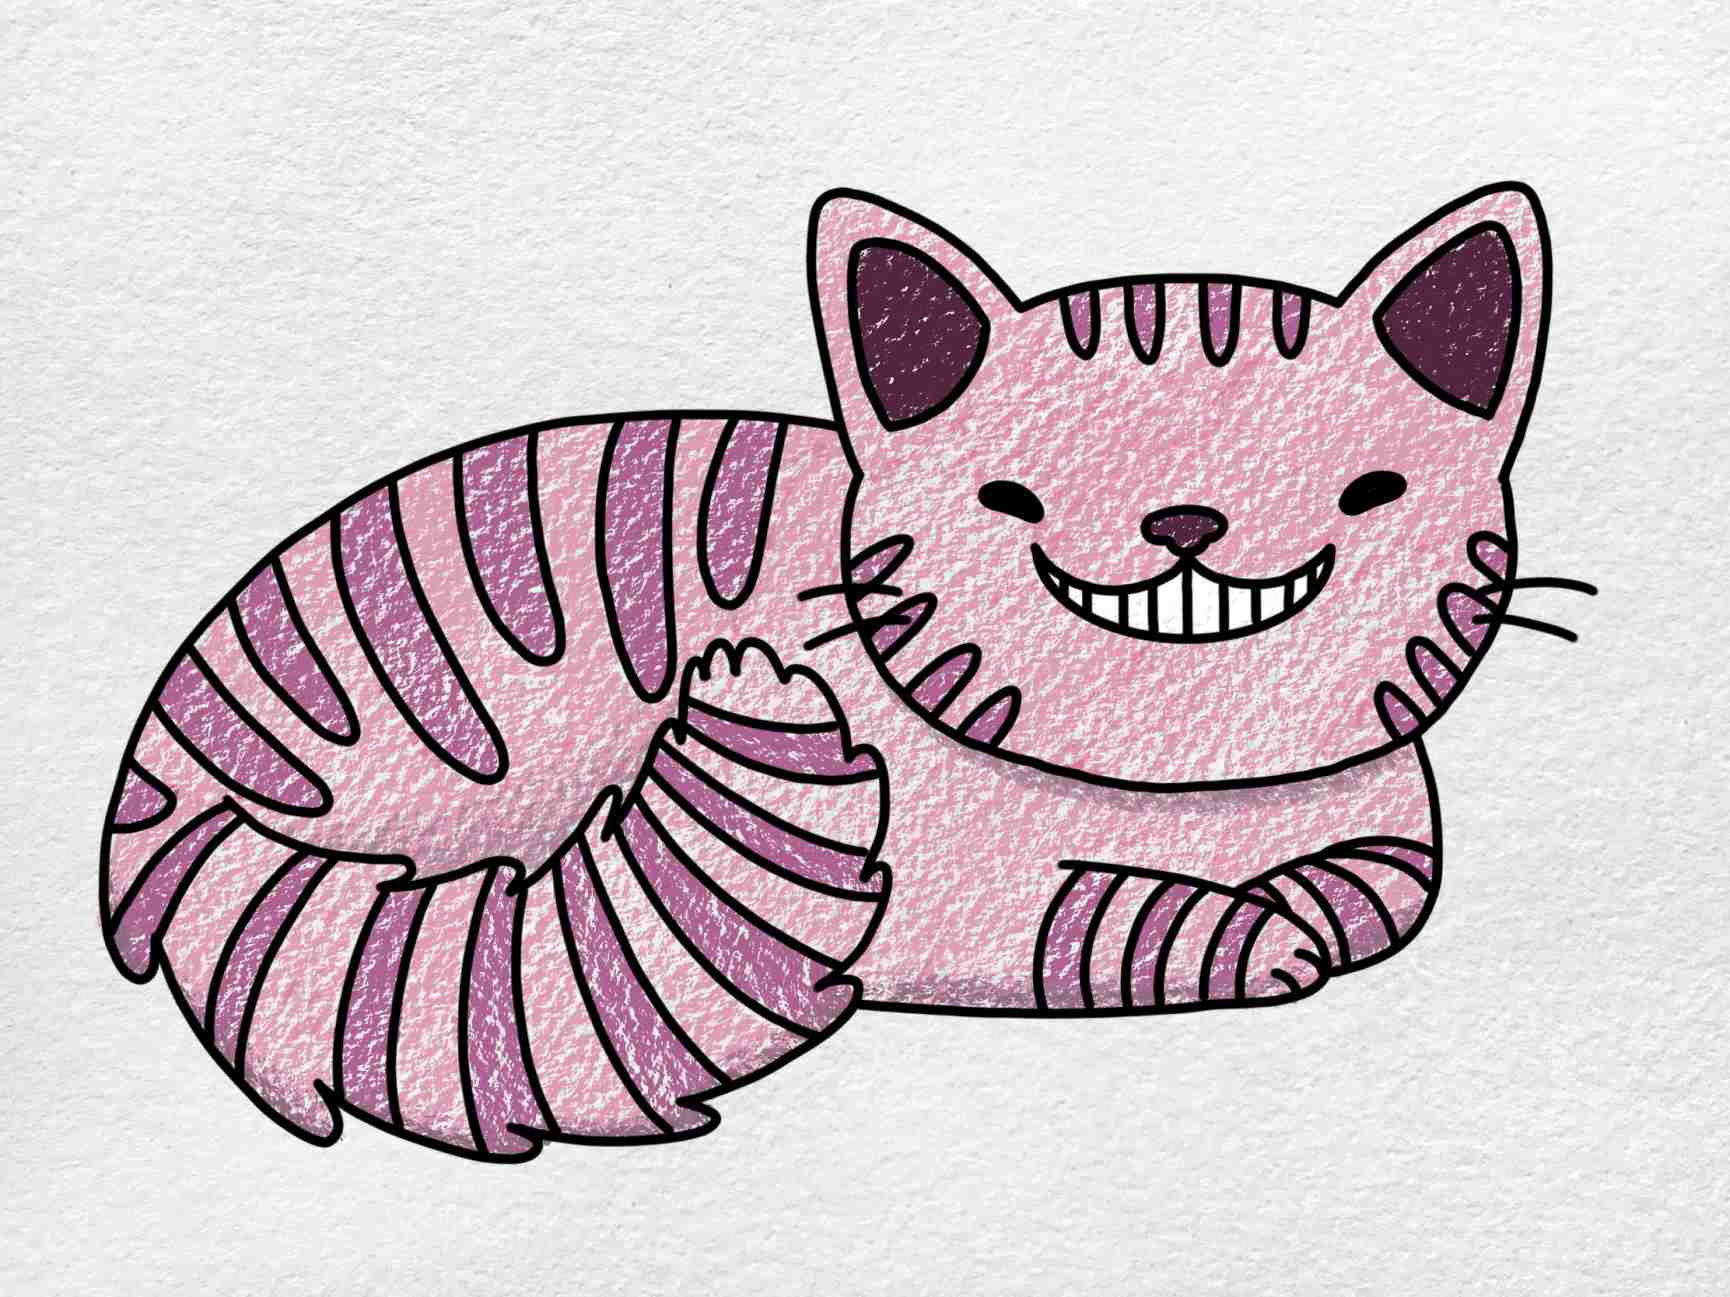 Cheshire Cat Drawing: Step 9